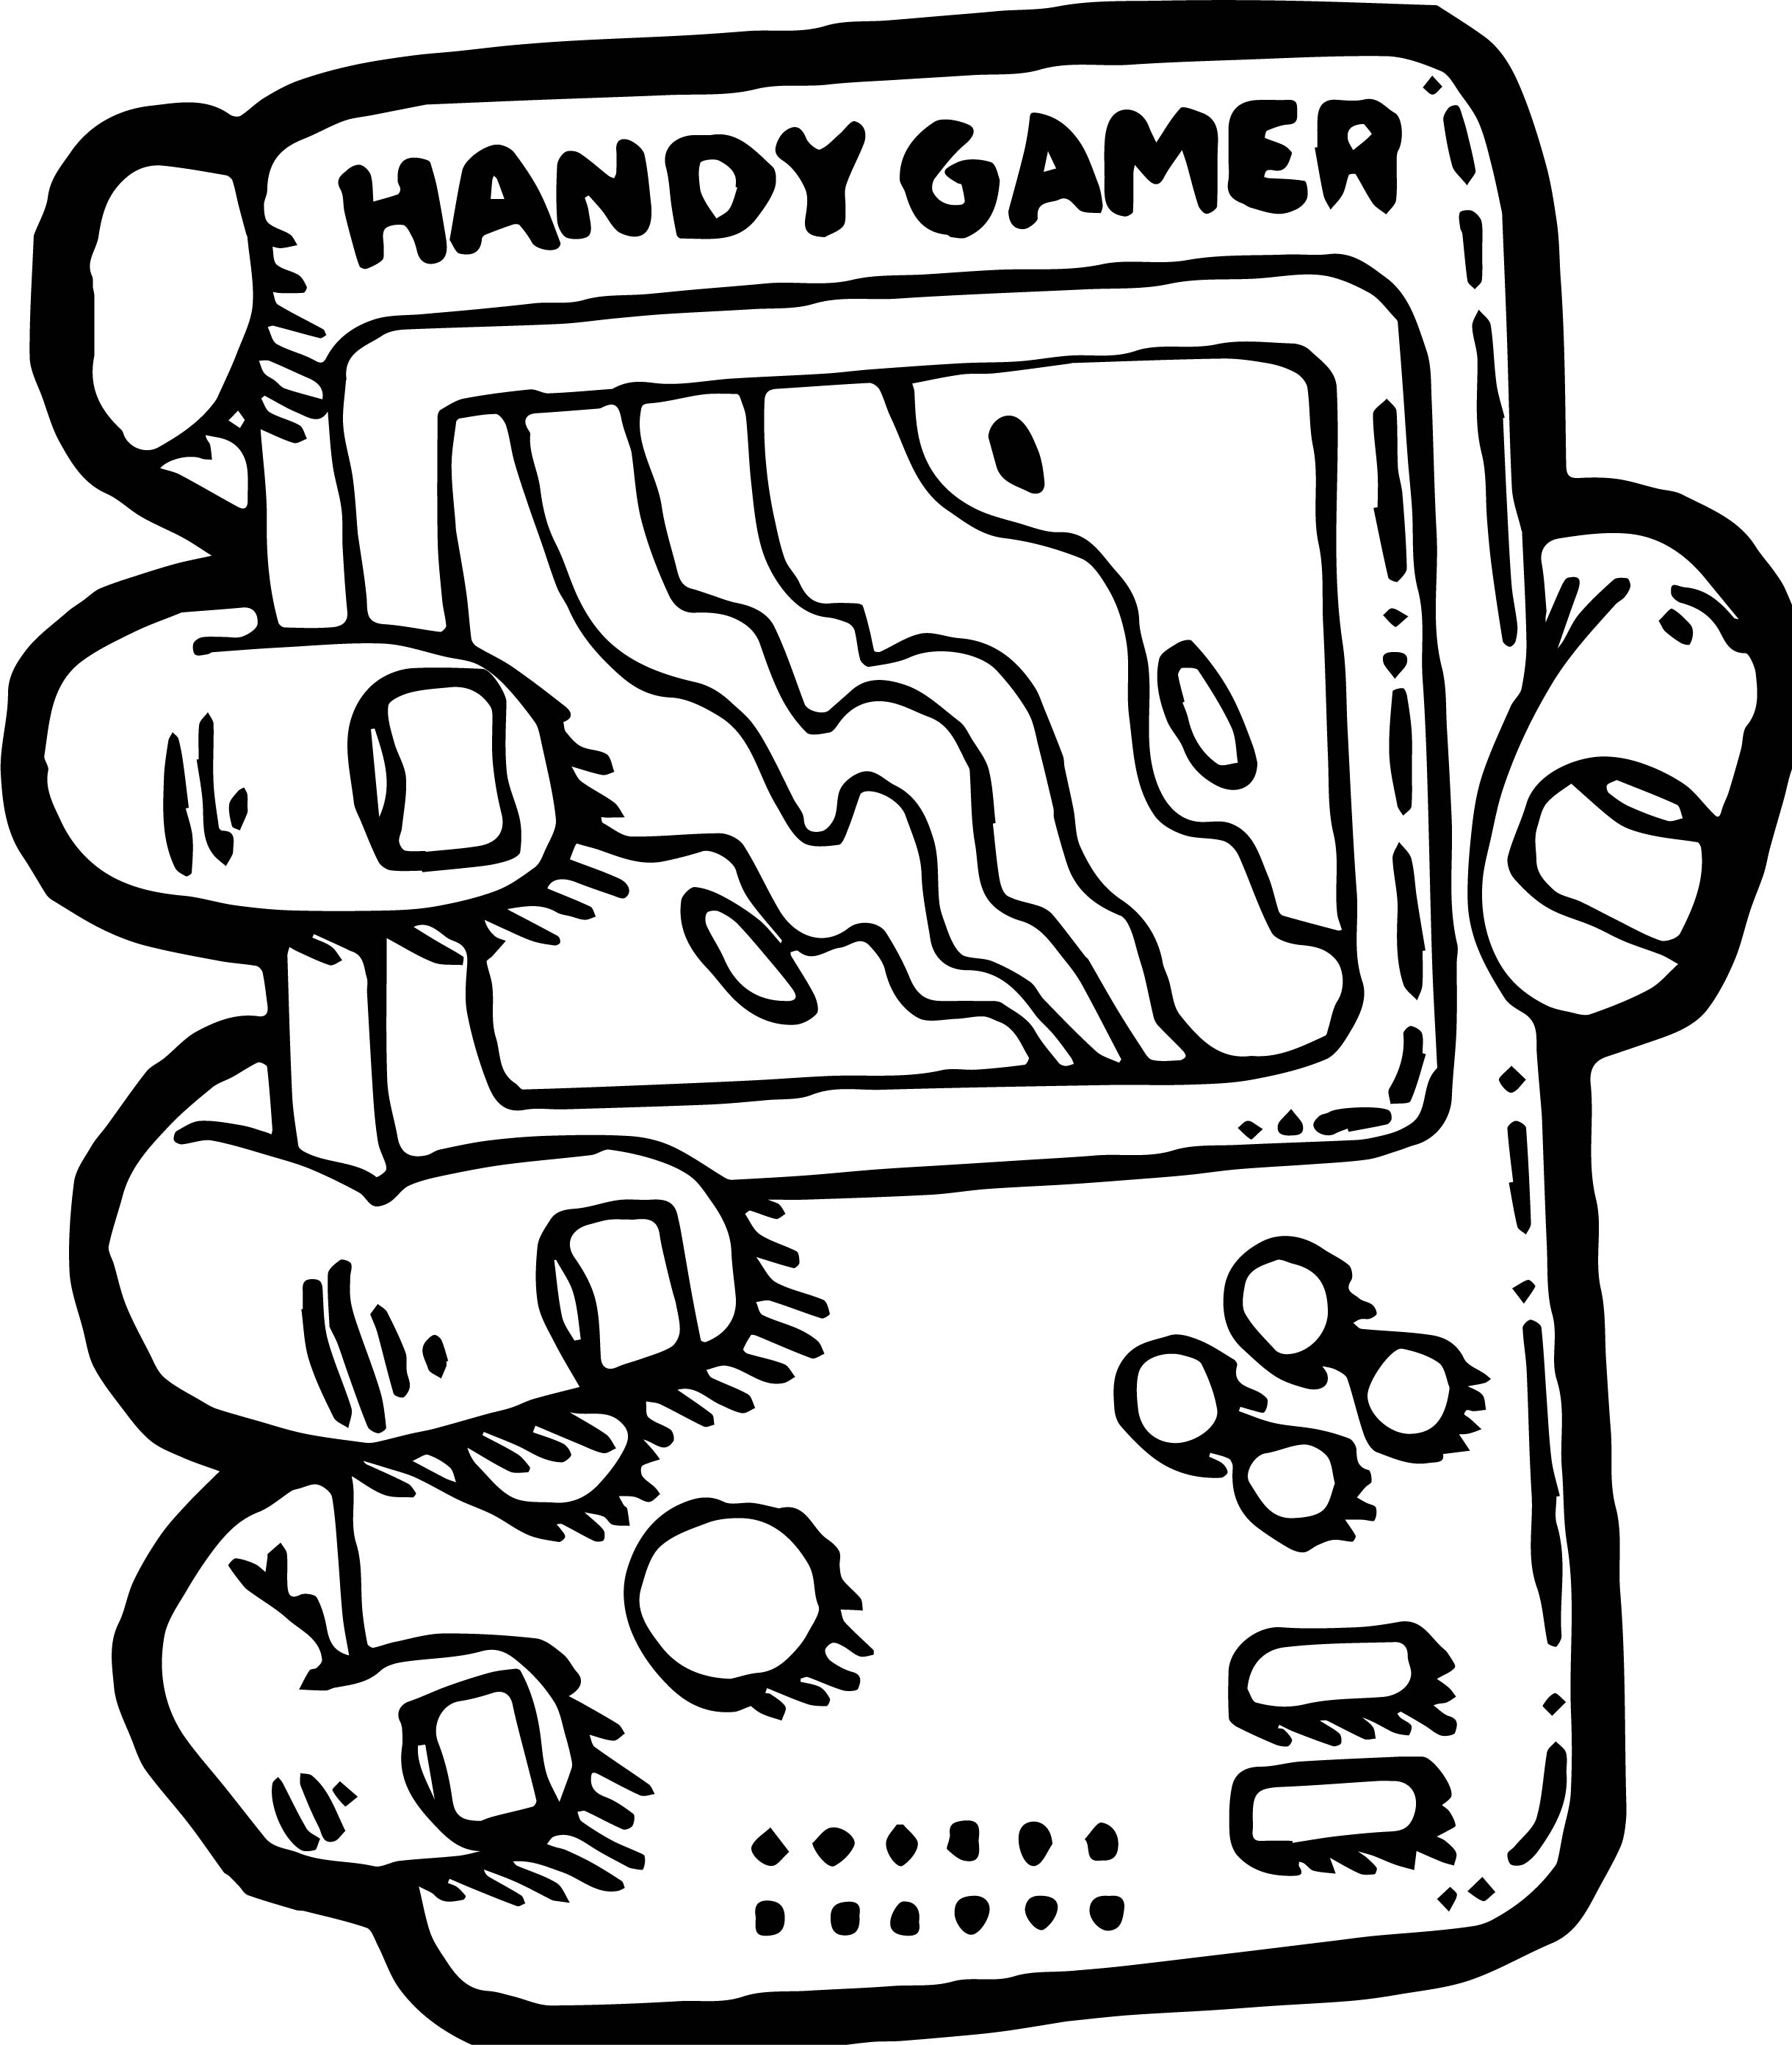 Nintendo Handy Gamer Playing Computer Games Coloring Page